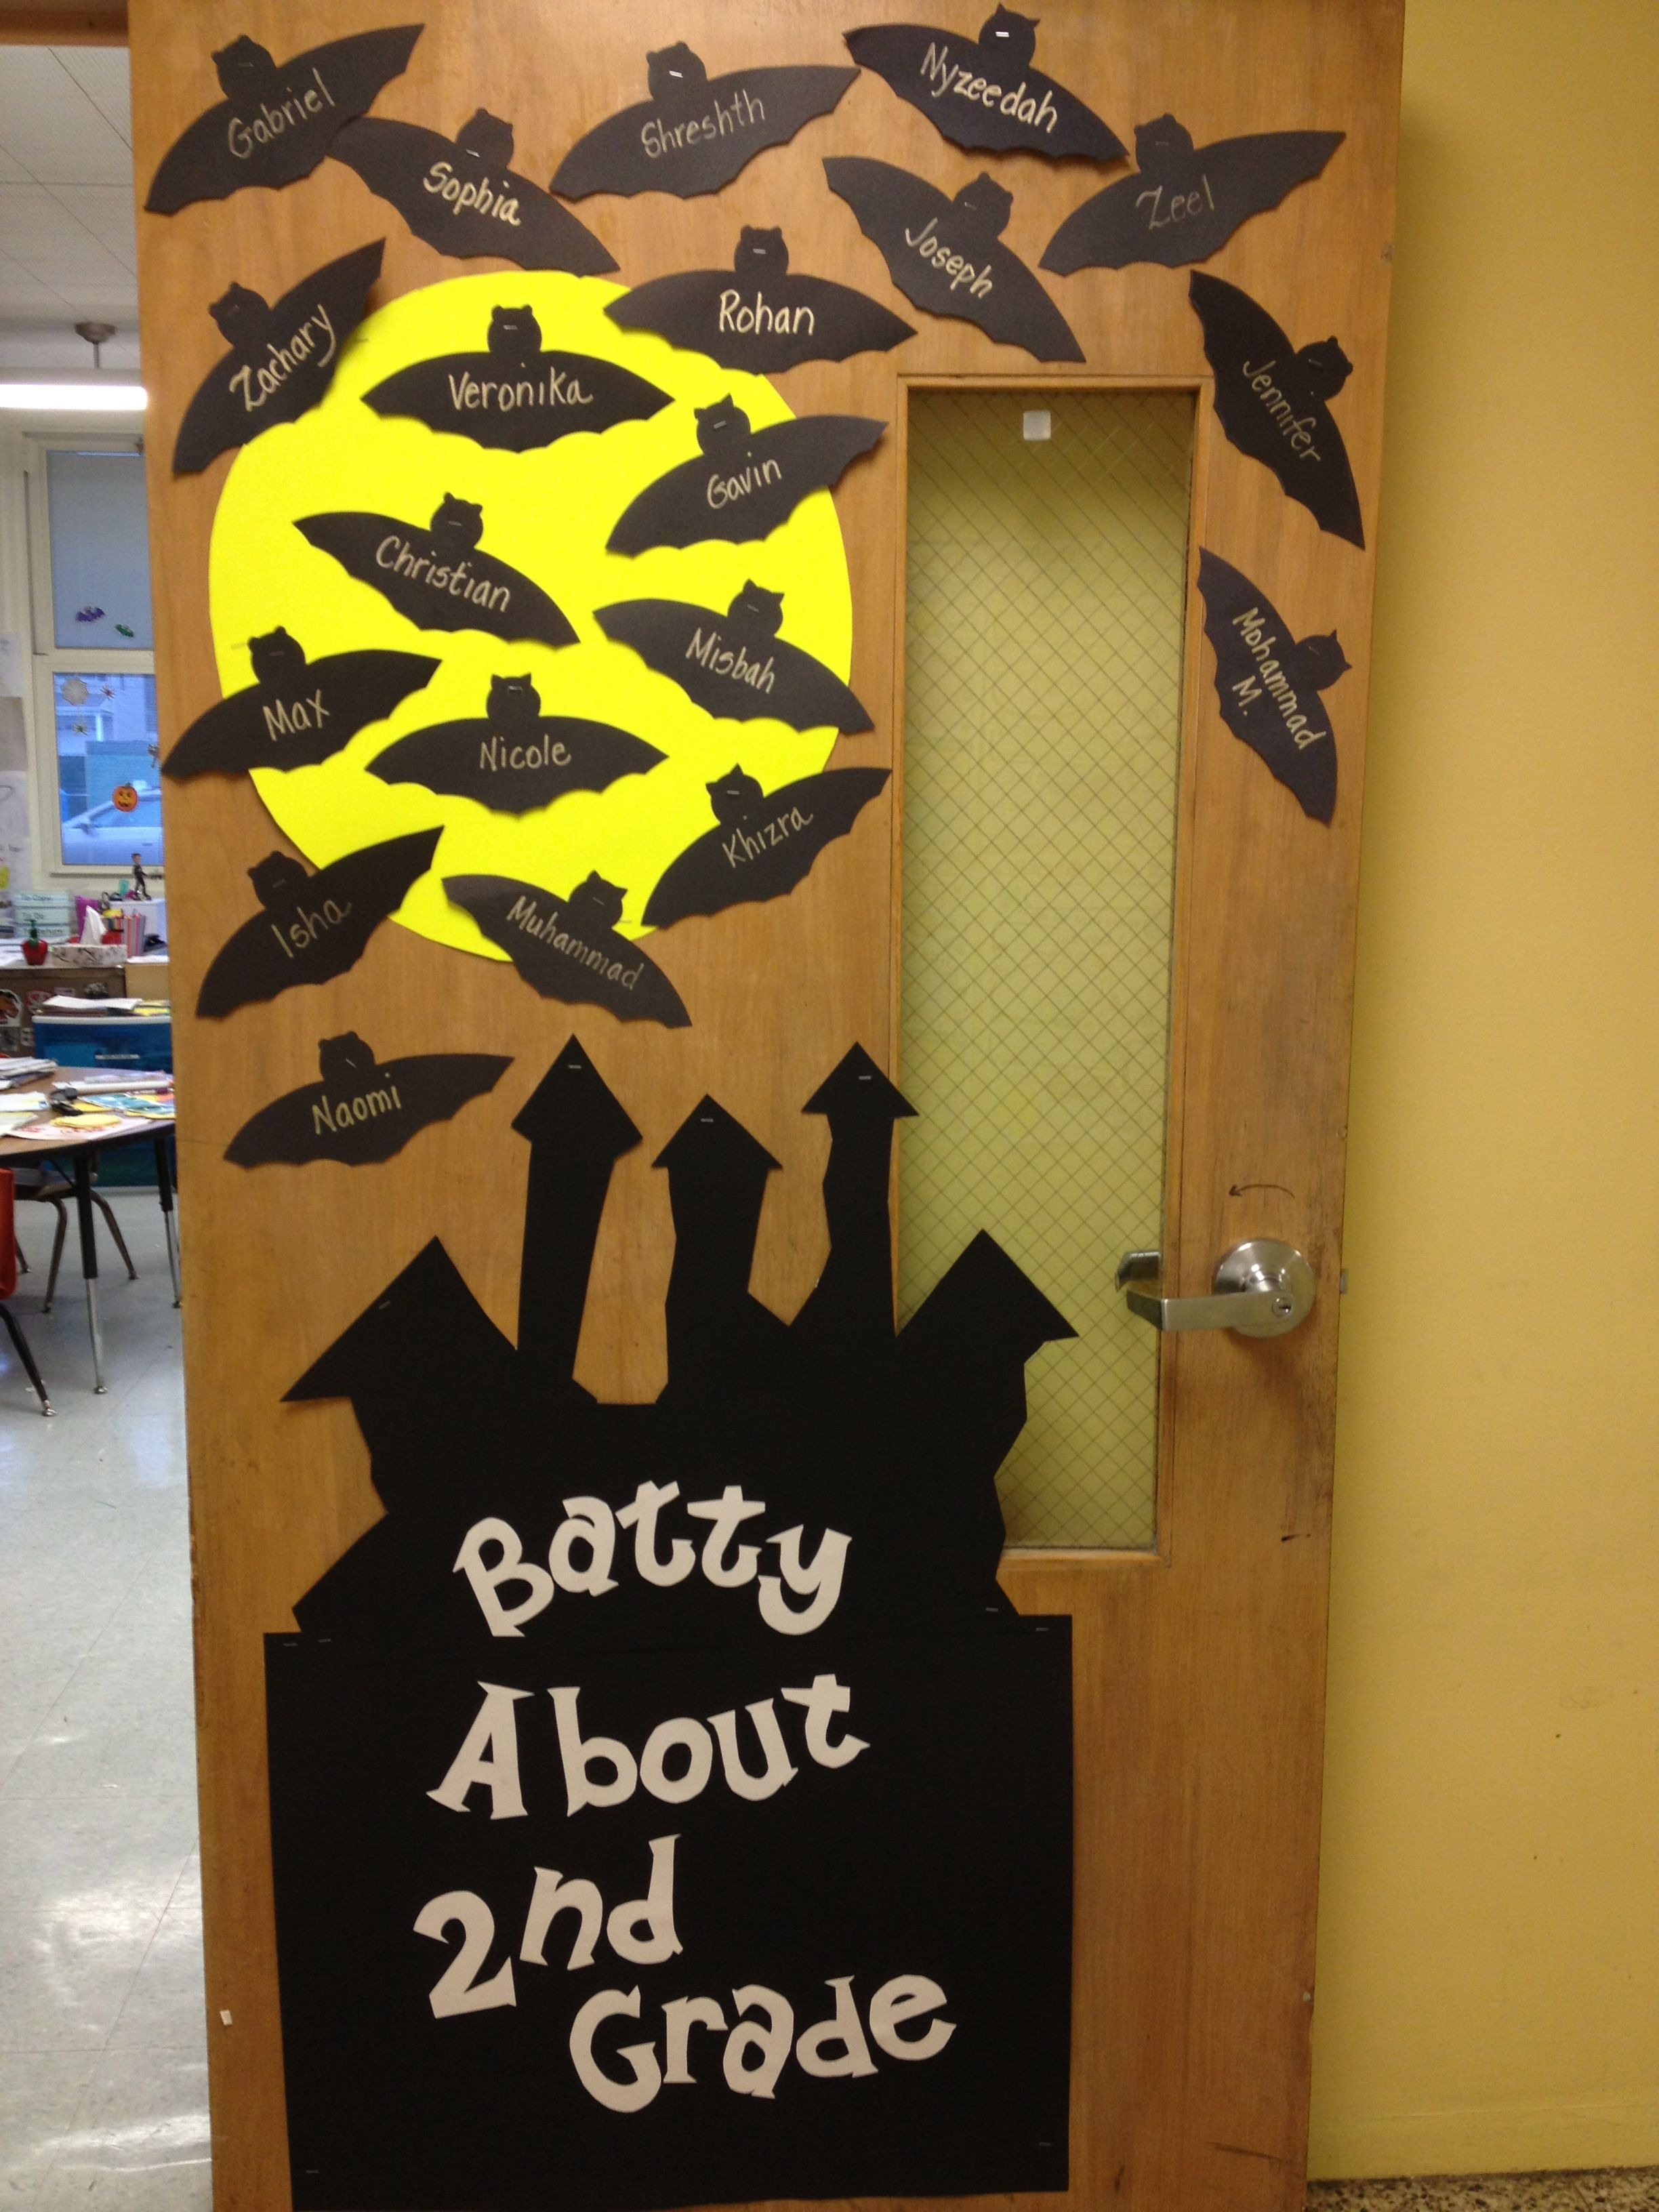 Drug Free Door Decorations we are batty about being drug free - Halloween Door Decoration Ideas